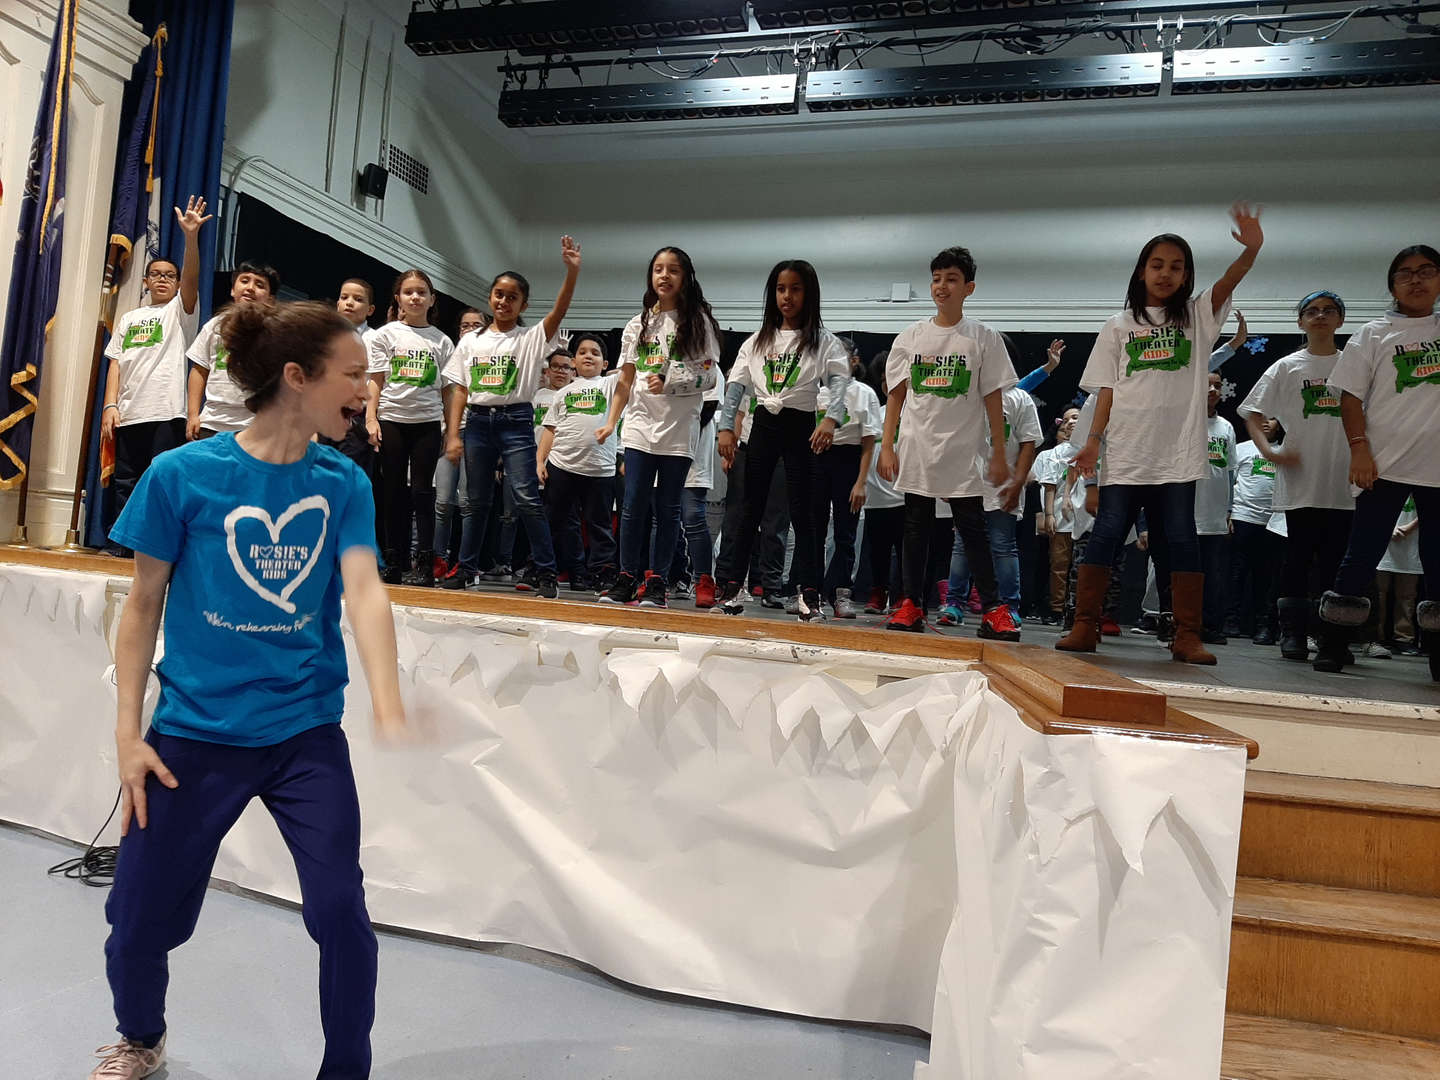 Rosie's Theater Kids leader guides students in dance